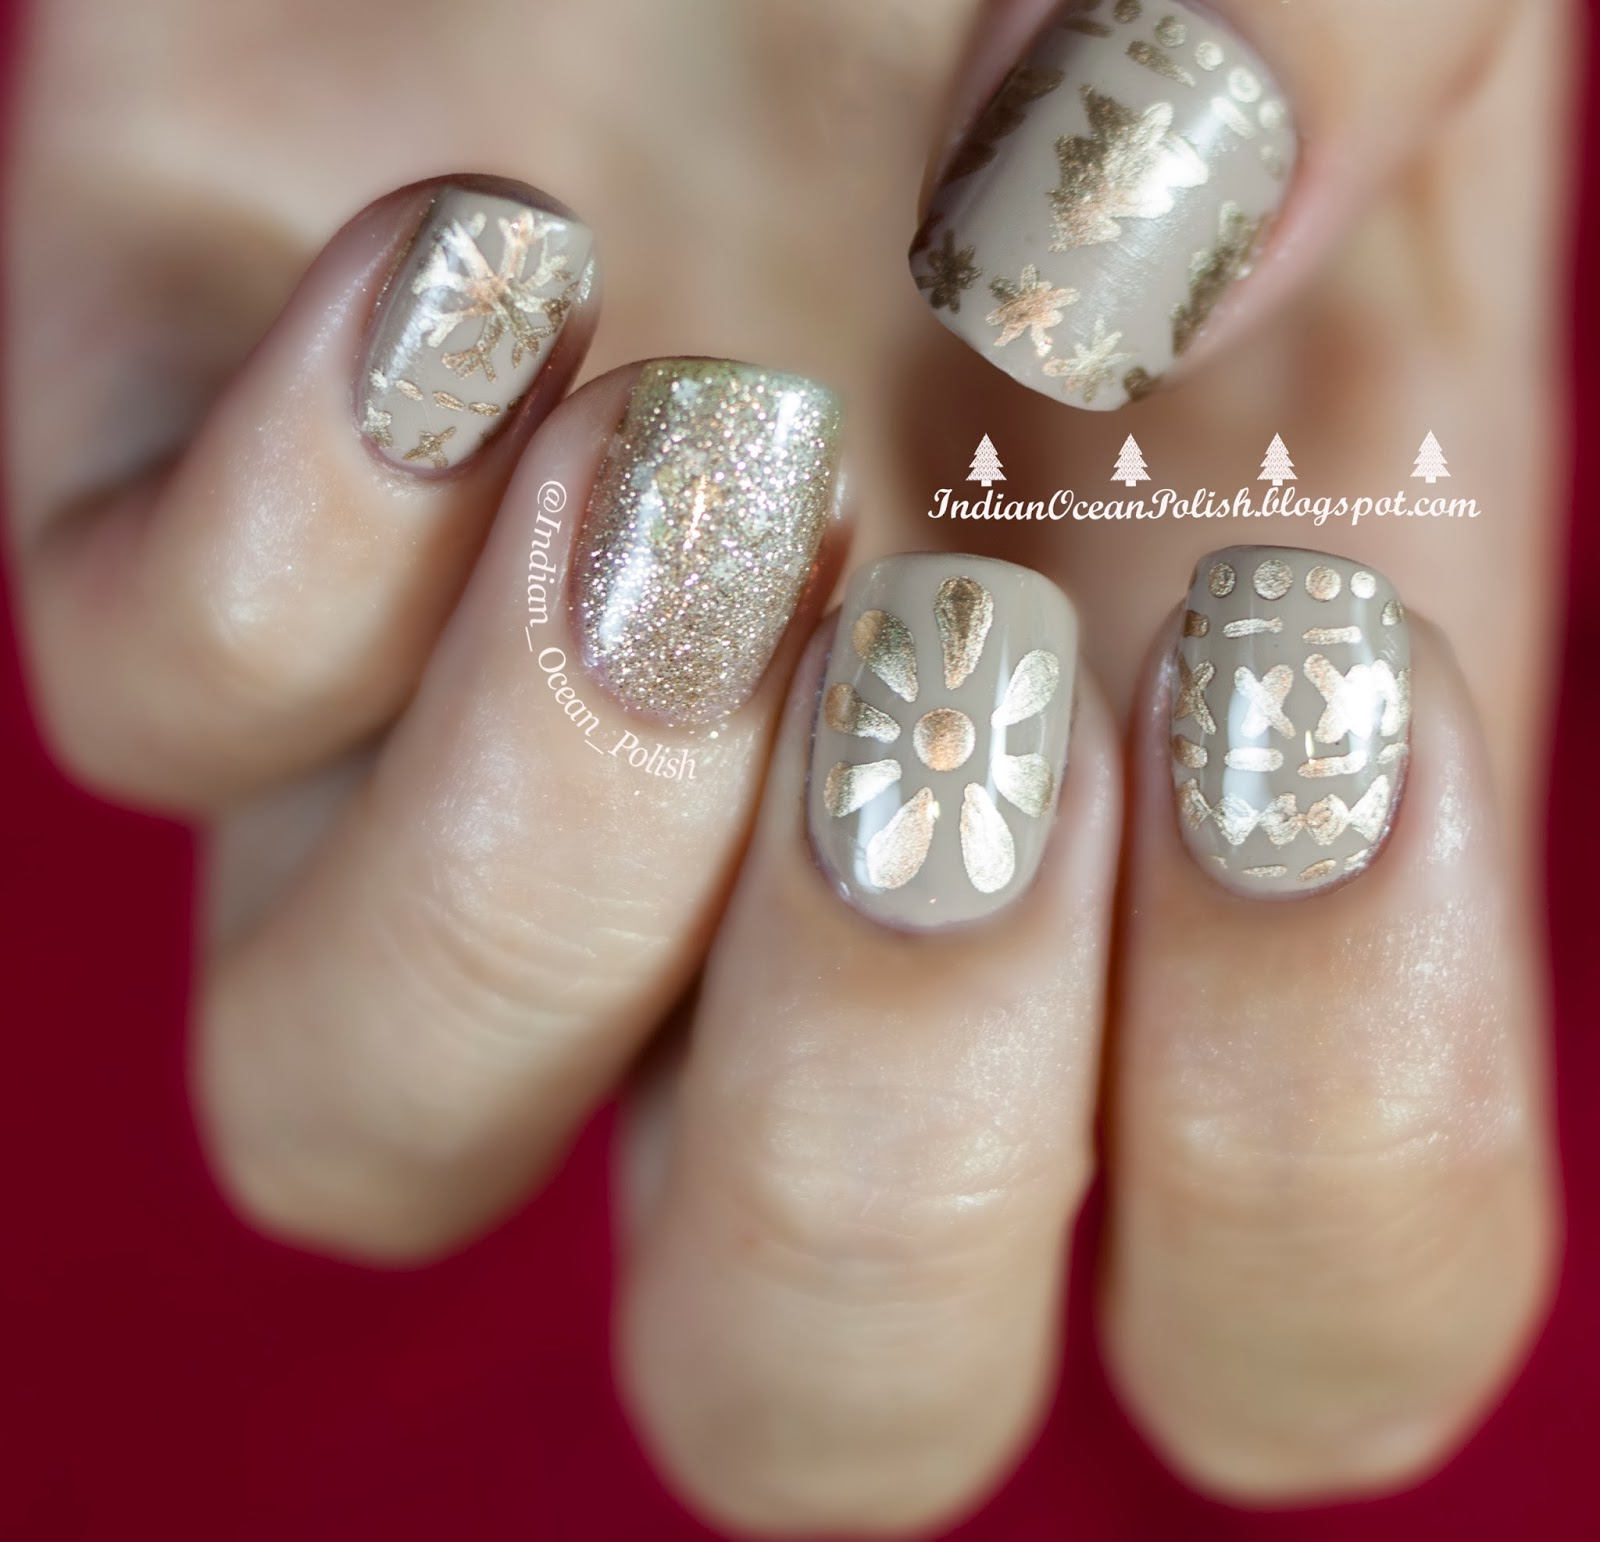 Indian Ocean Polish Christmas 2017 Nail Art Ideas Simple And Not So